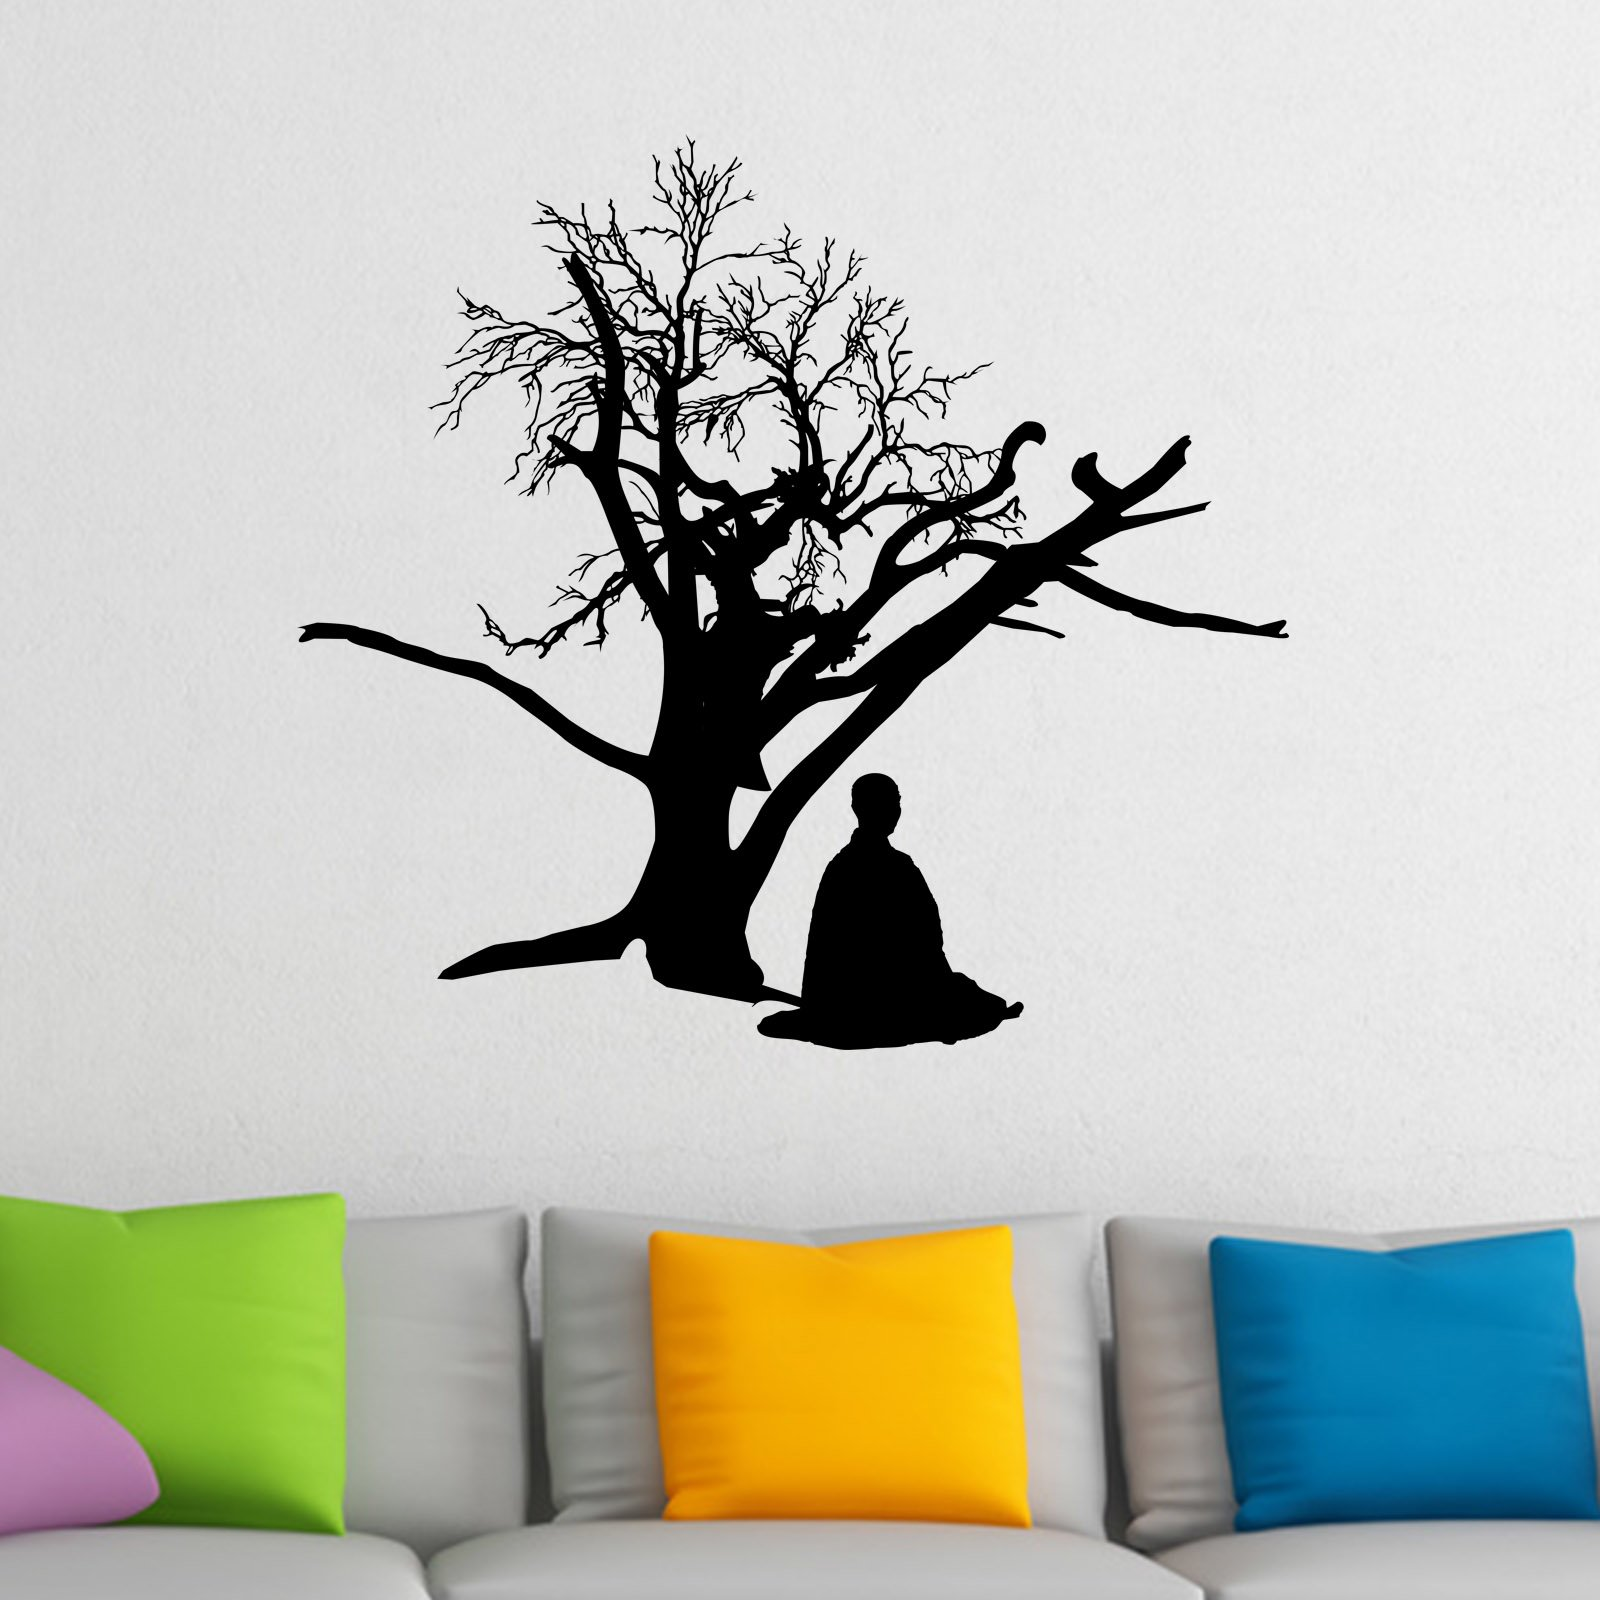 African figure blowing horn wall sticker world of wall stickers related products amipublicfo Gallery